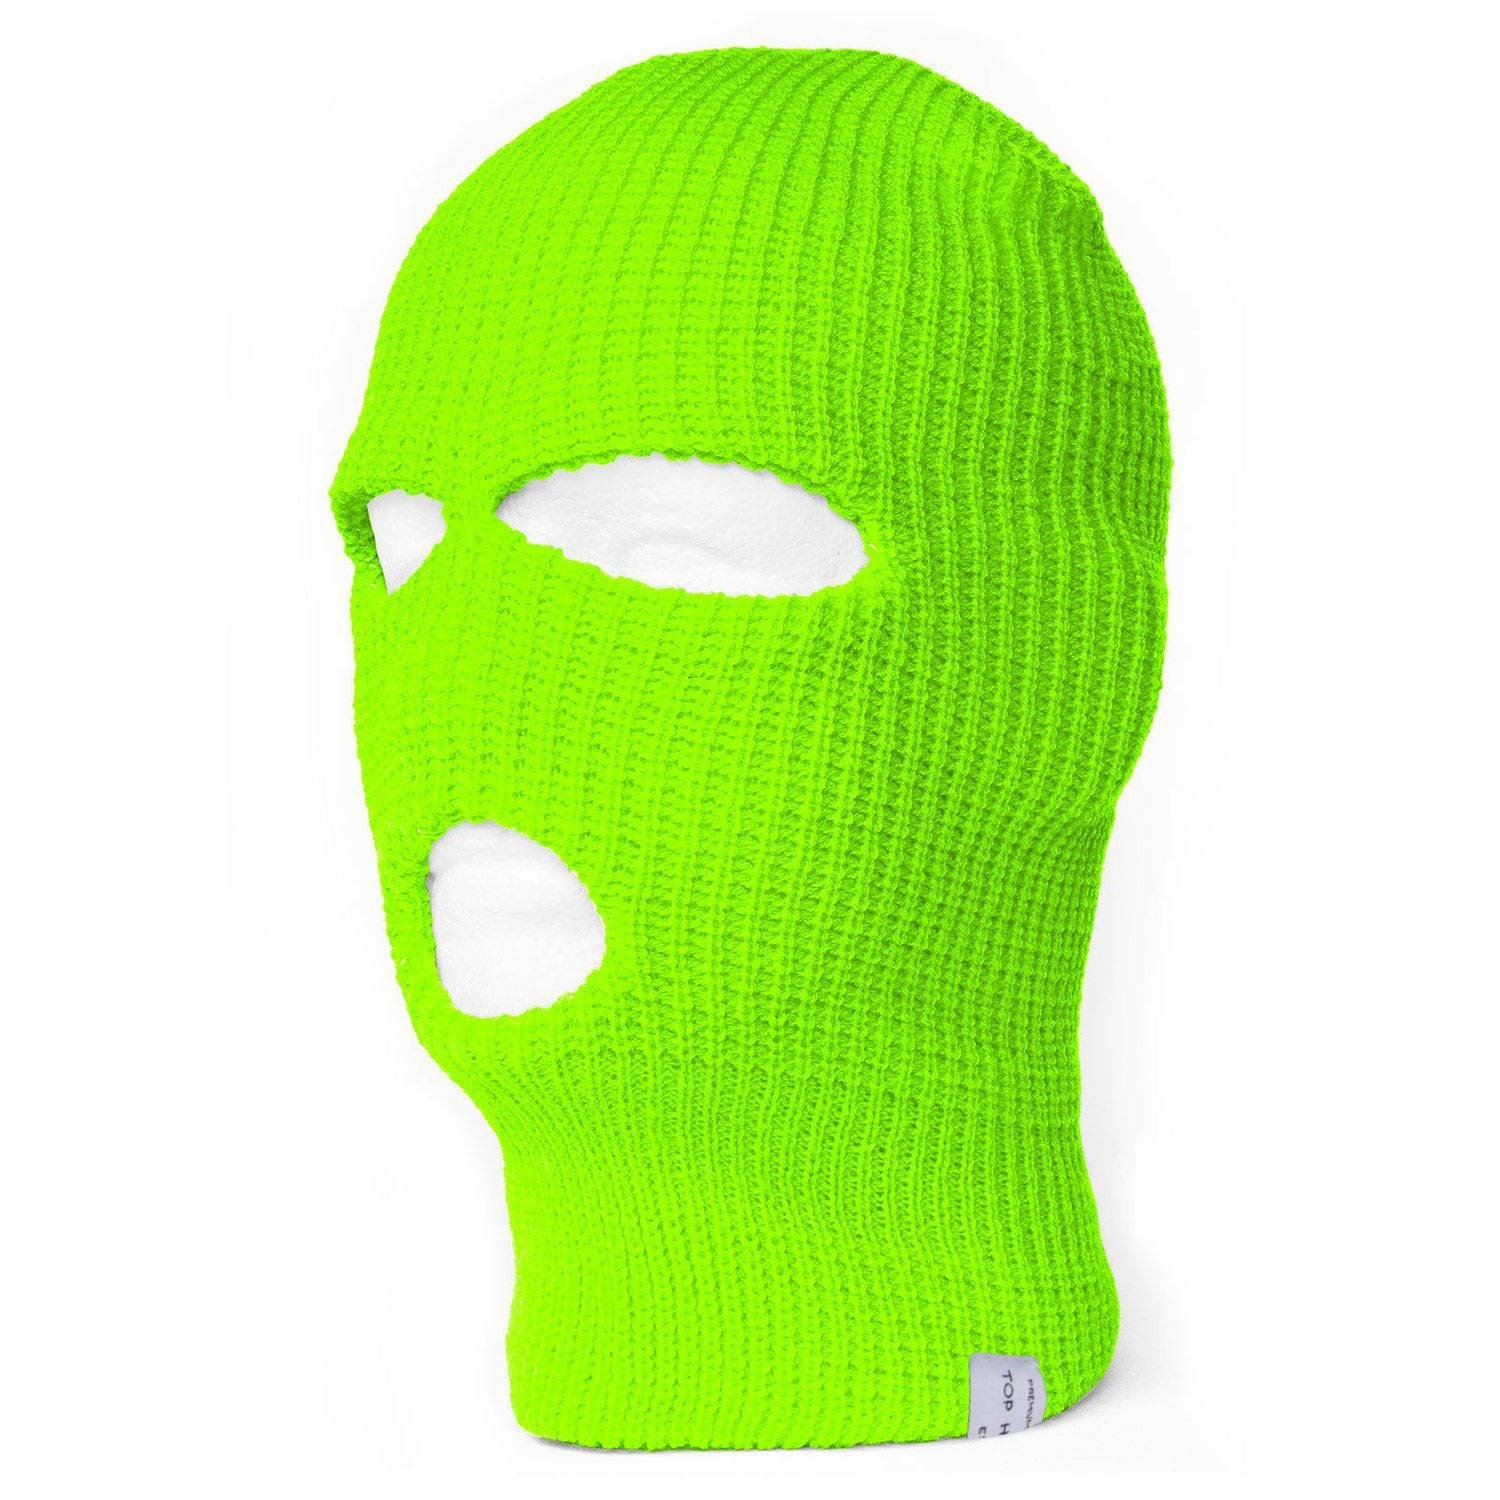 TOP HEADWEAR TopHeadwear 3-Hole Ski Face Mask Balaclava Black